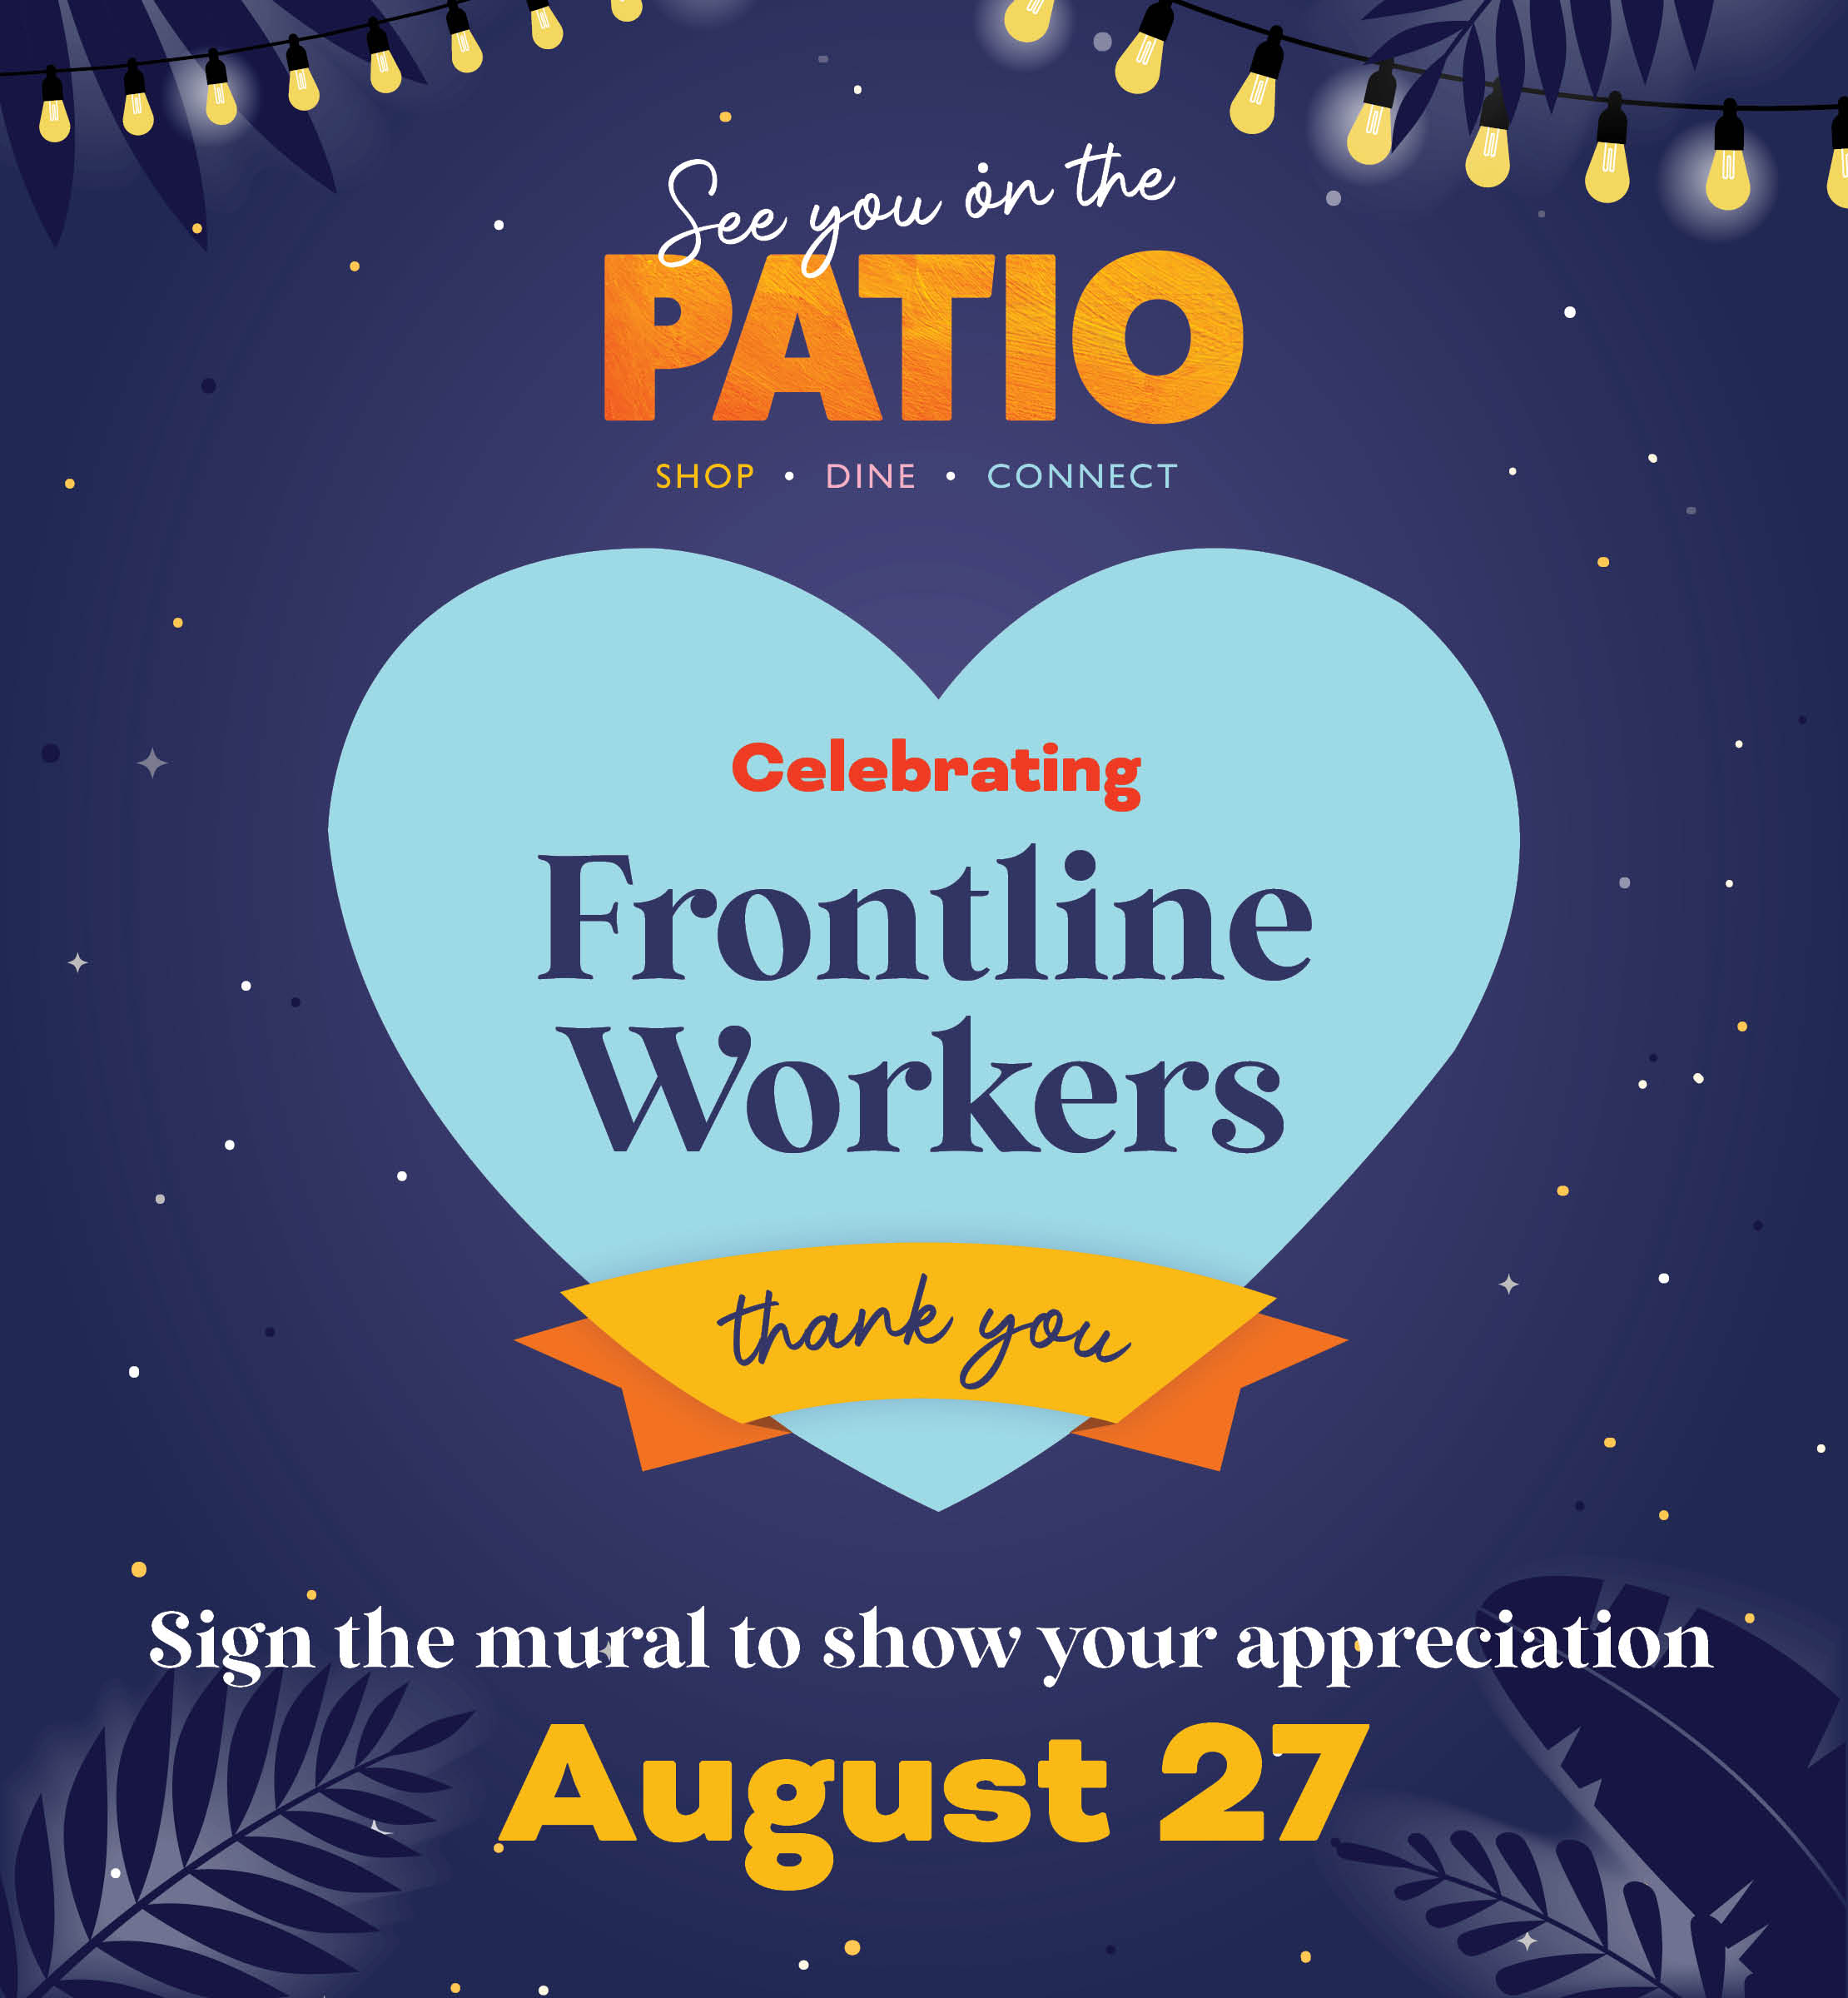 See You on the Patio Post - Frontline Workers (002)